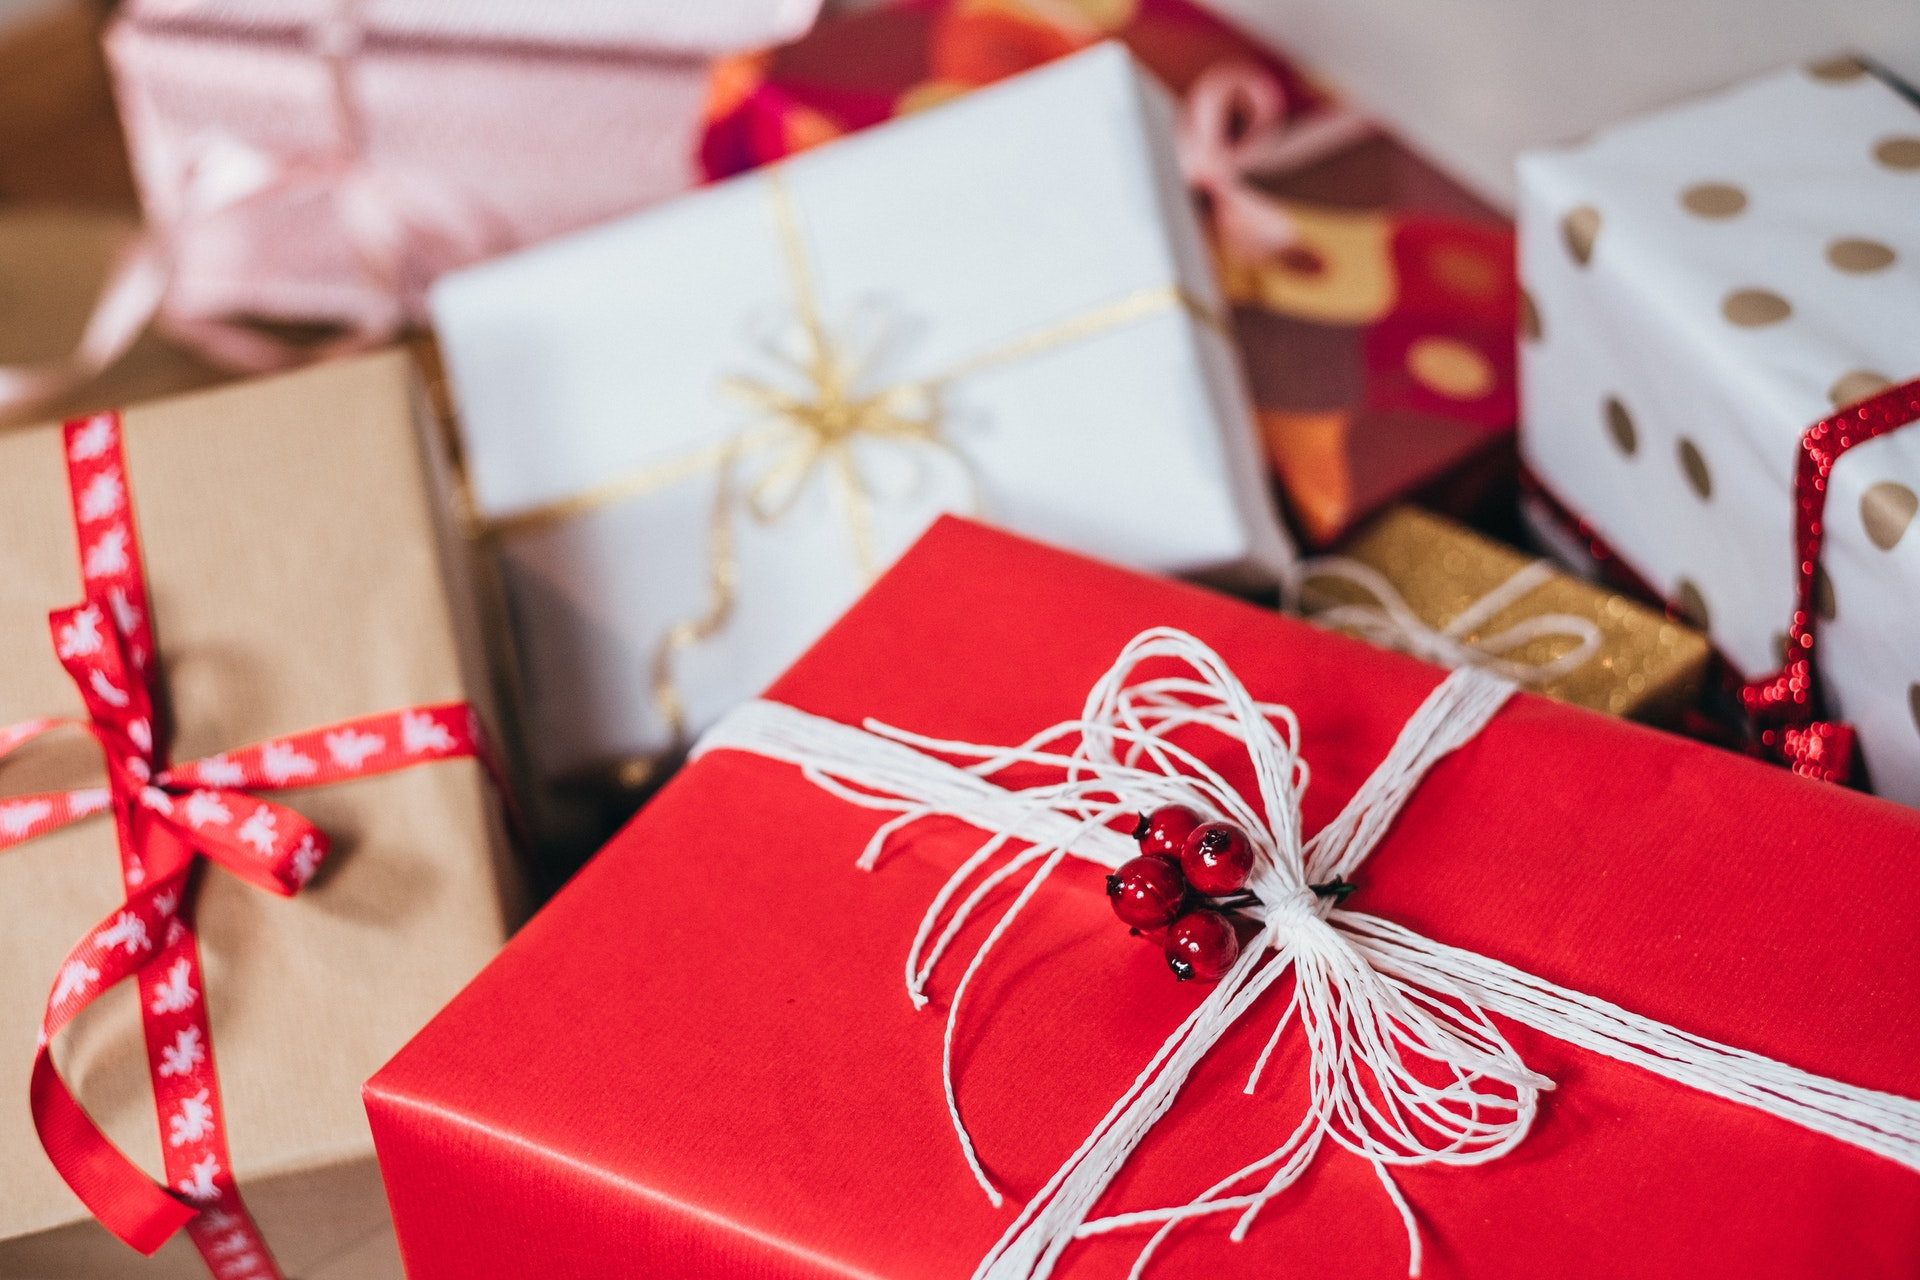 Why People Choose The Online Gift Service Jaipur?